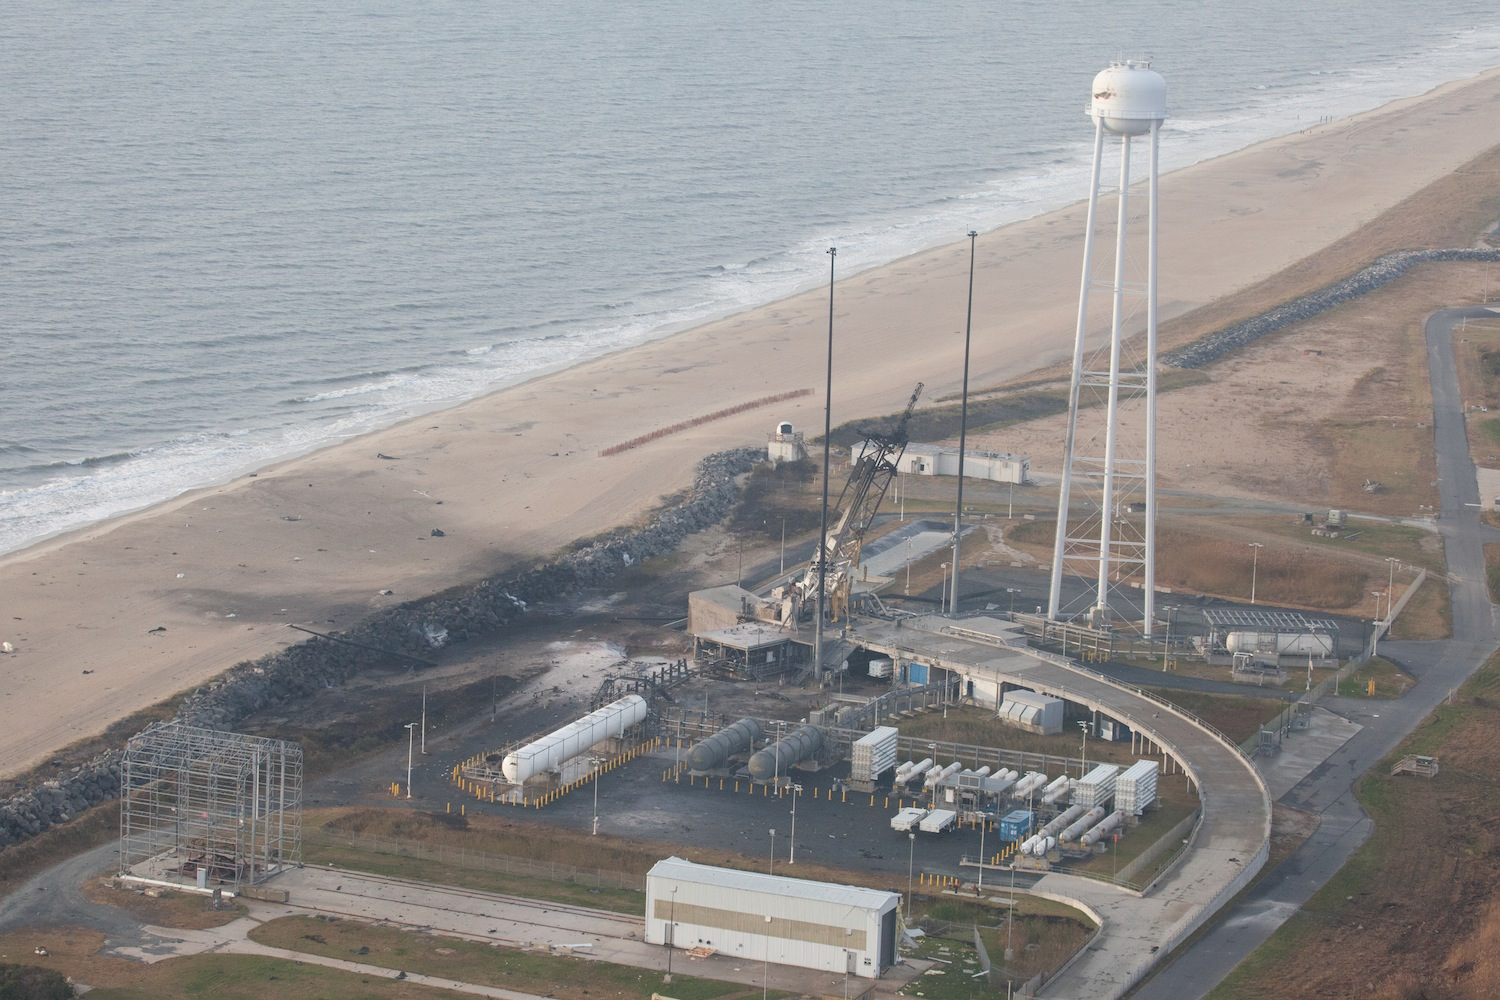 An aerial view of the Wallops Island launch facilities taken by the Wallops Incident Response Team on Wednesday. Credit: NASA/Terry Zaperach